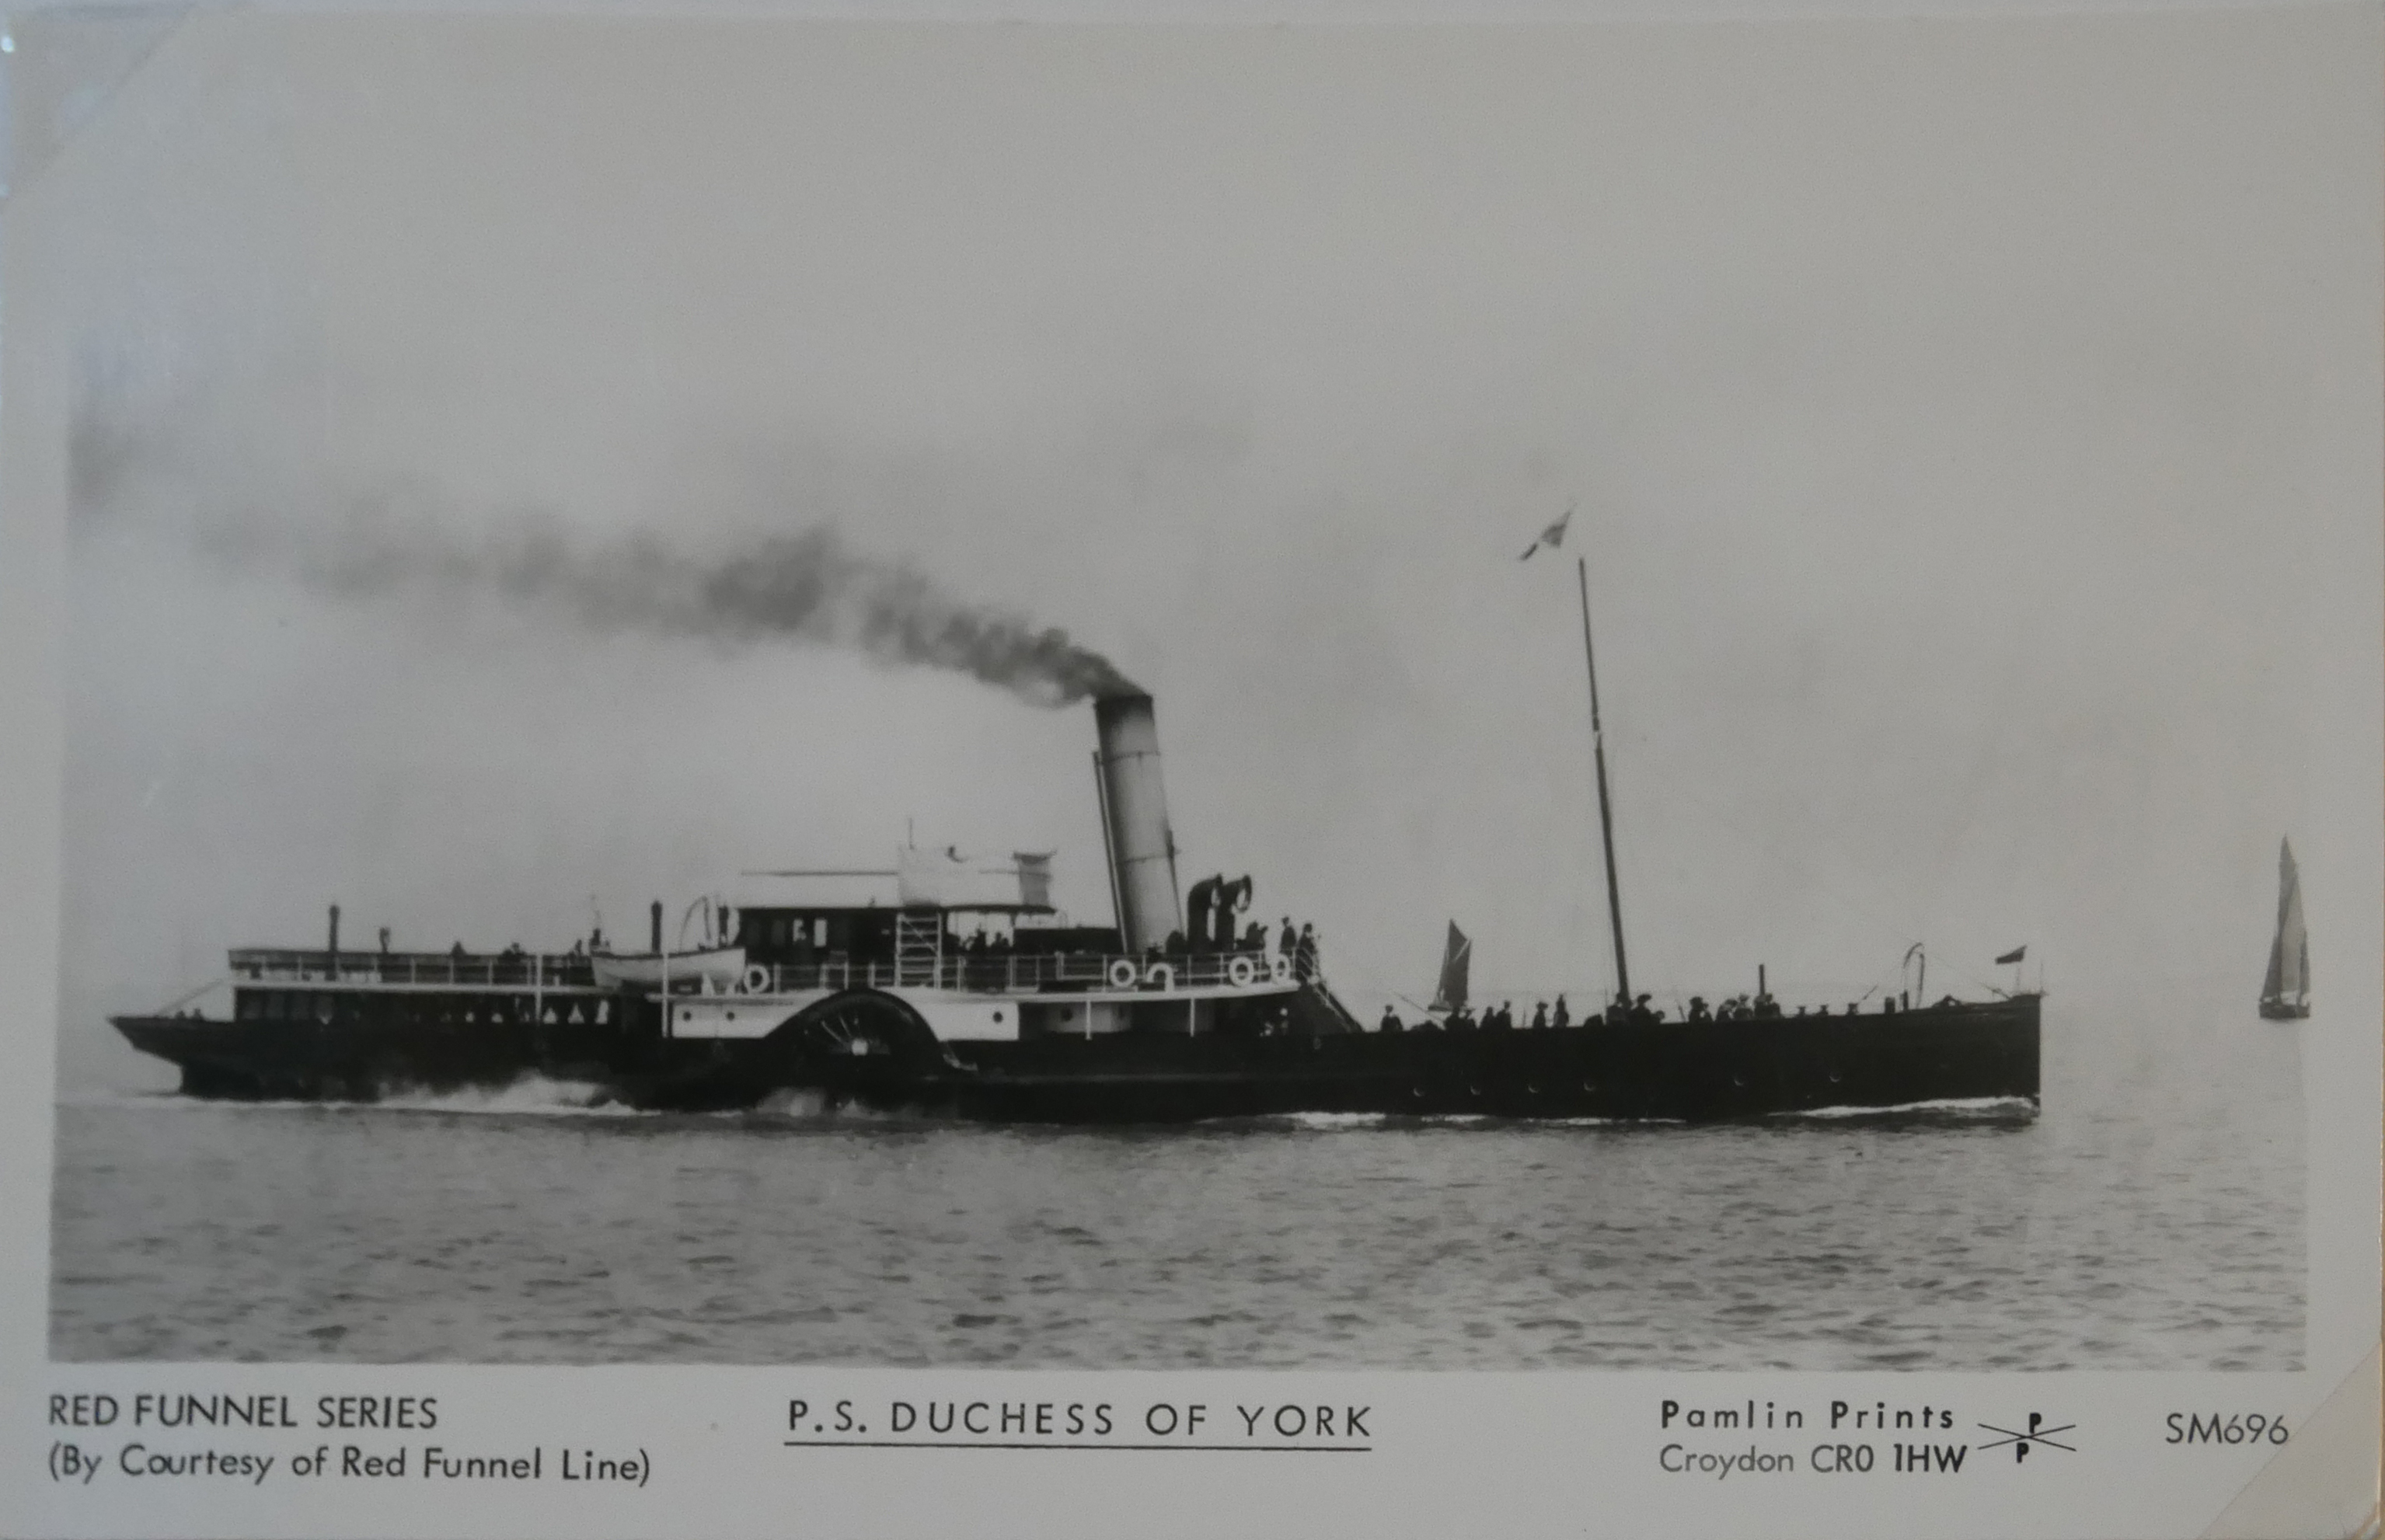 AN ALBUM OF BLACK AND WHITE PHOTOGRAPHIC POSTCARDS OF STEAM SHIPS Issued by Pamlin Prints, including - Image 4 of 10